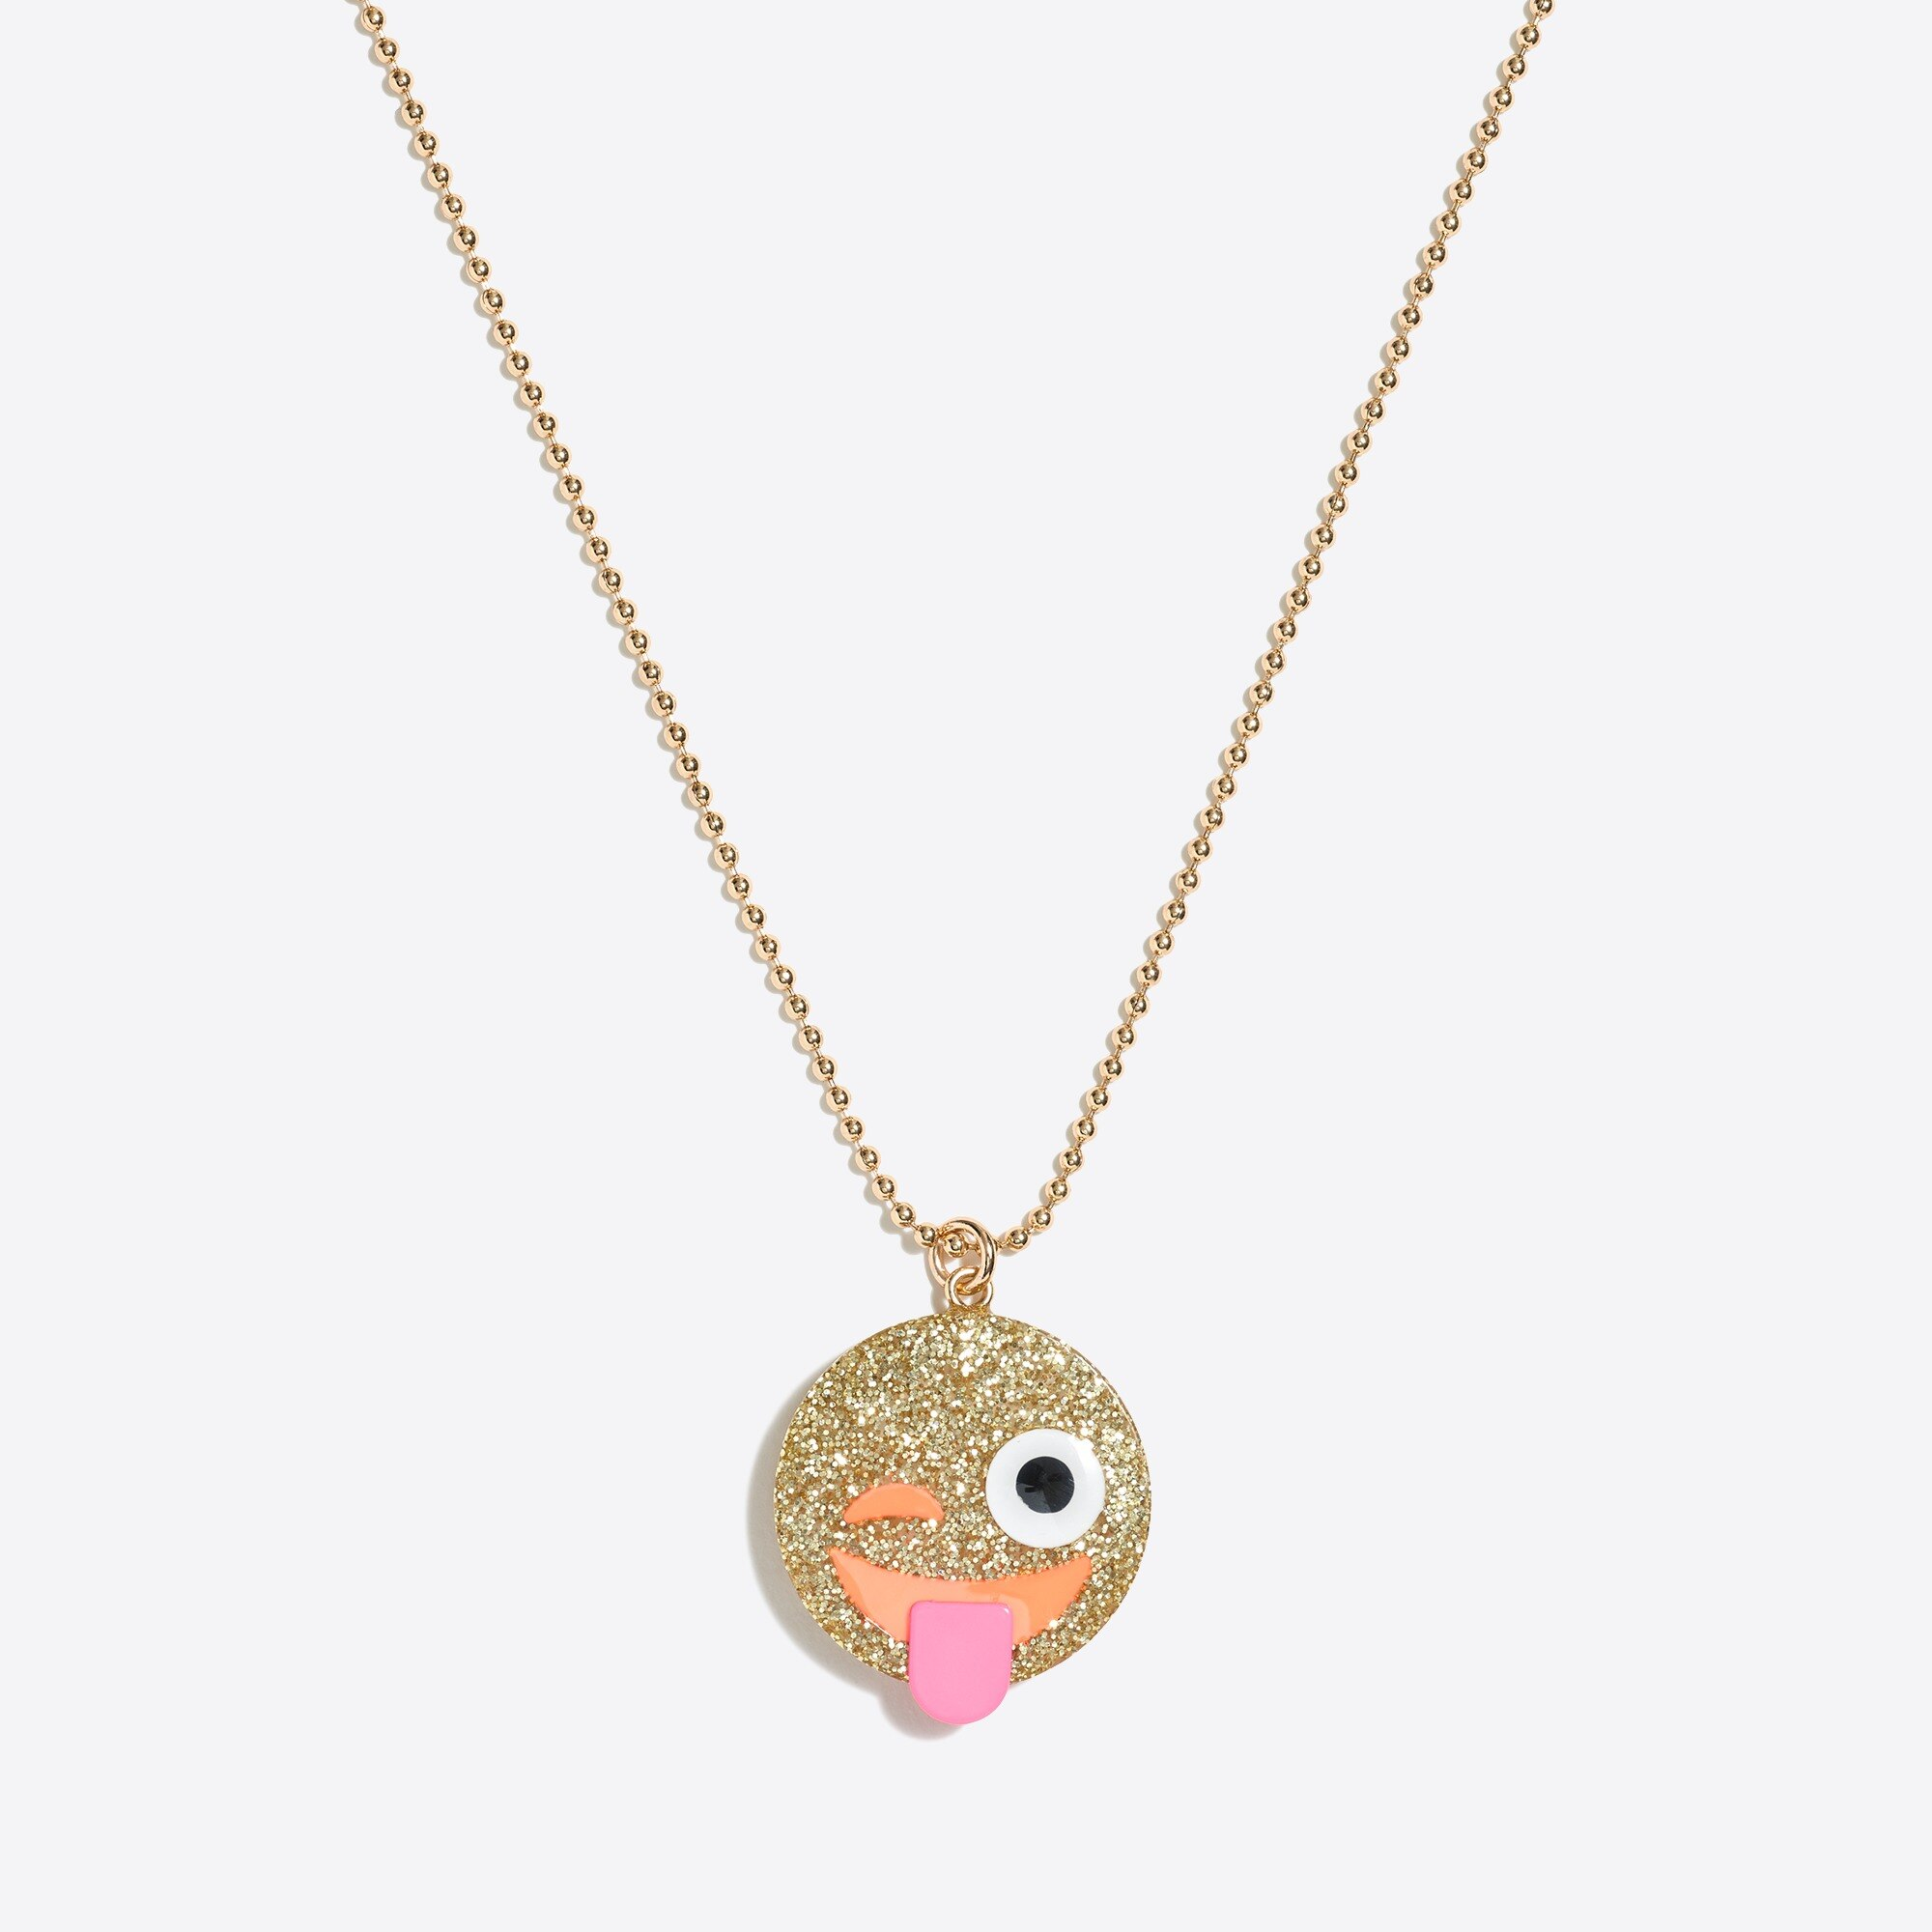 Girls' emoji pendant necklace factorygirls jewelry & accessories c